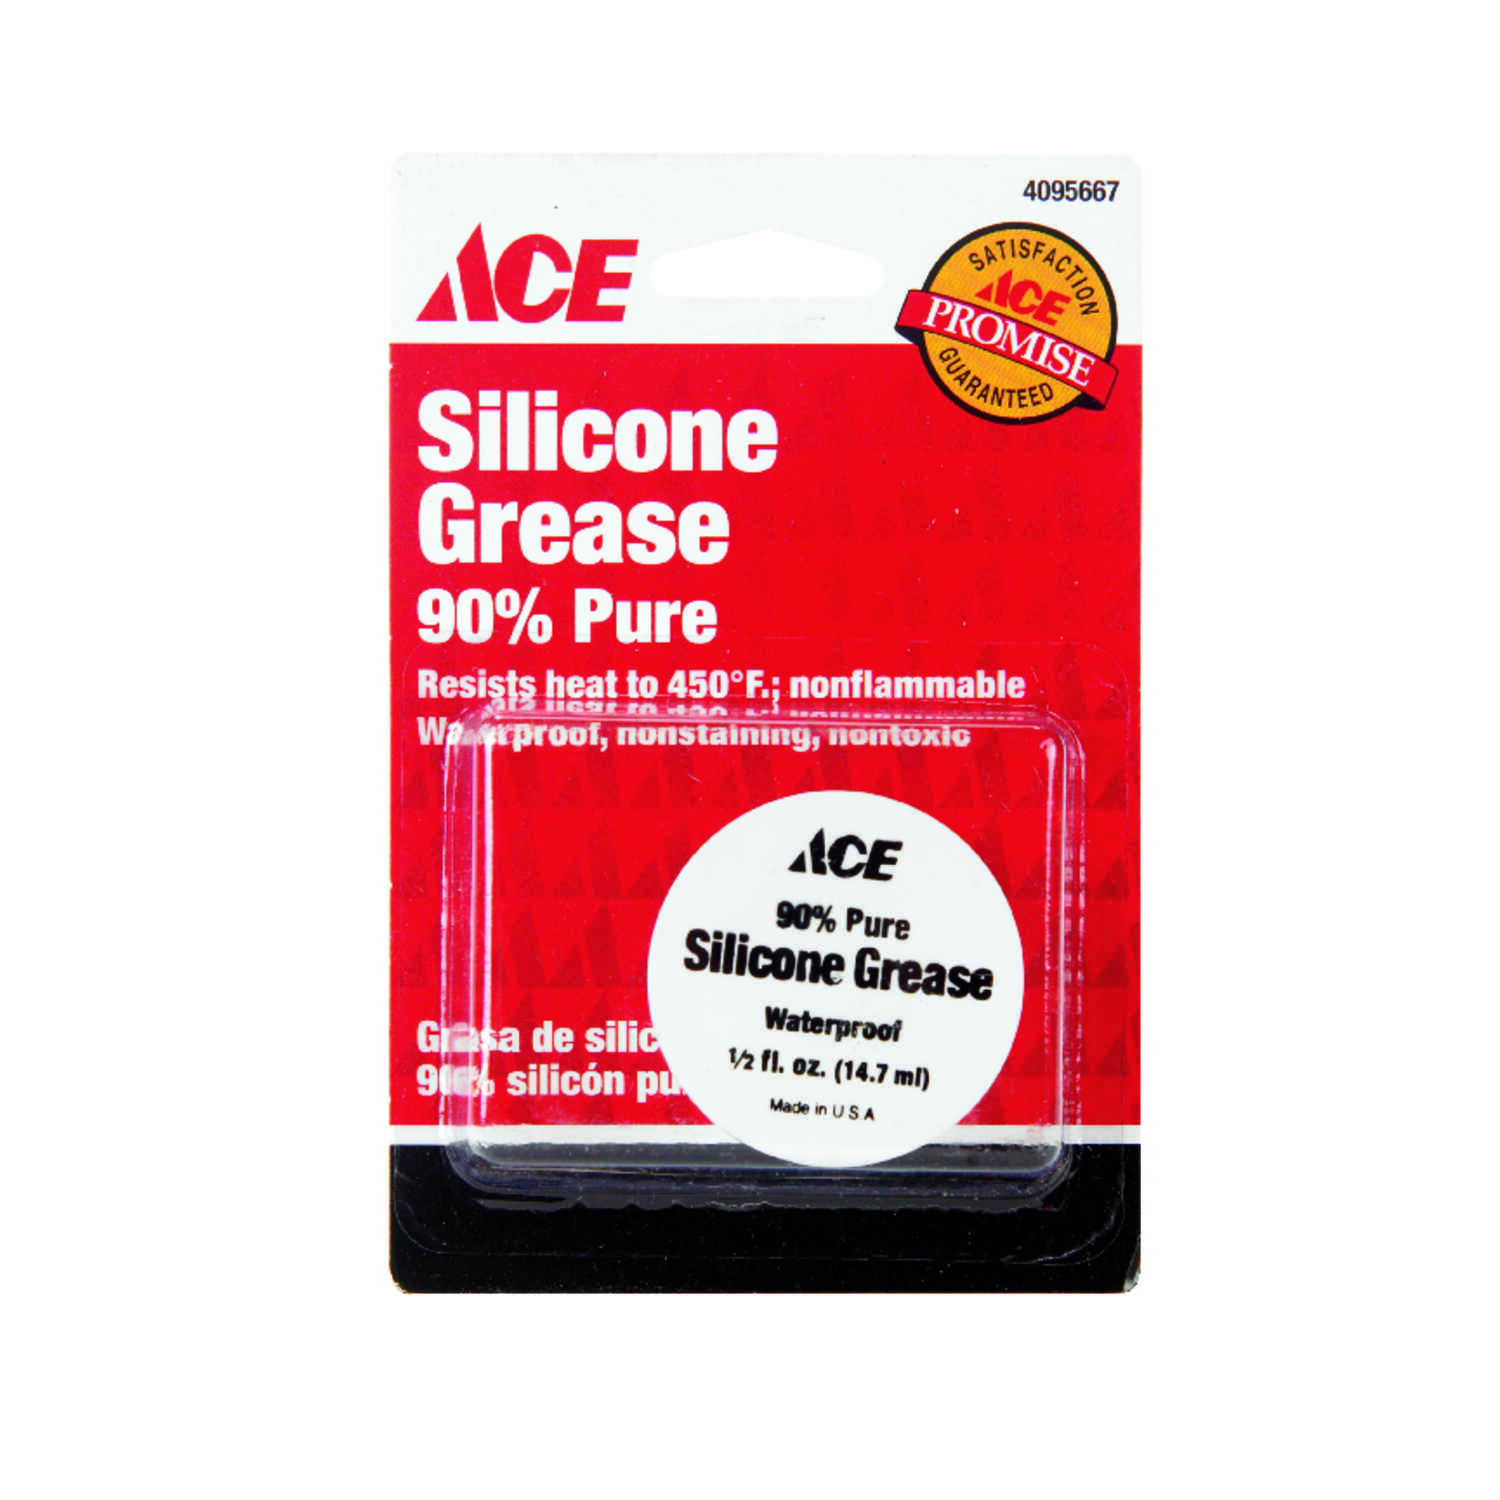 Ace Silicone Grease - Ace Hardware